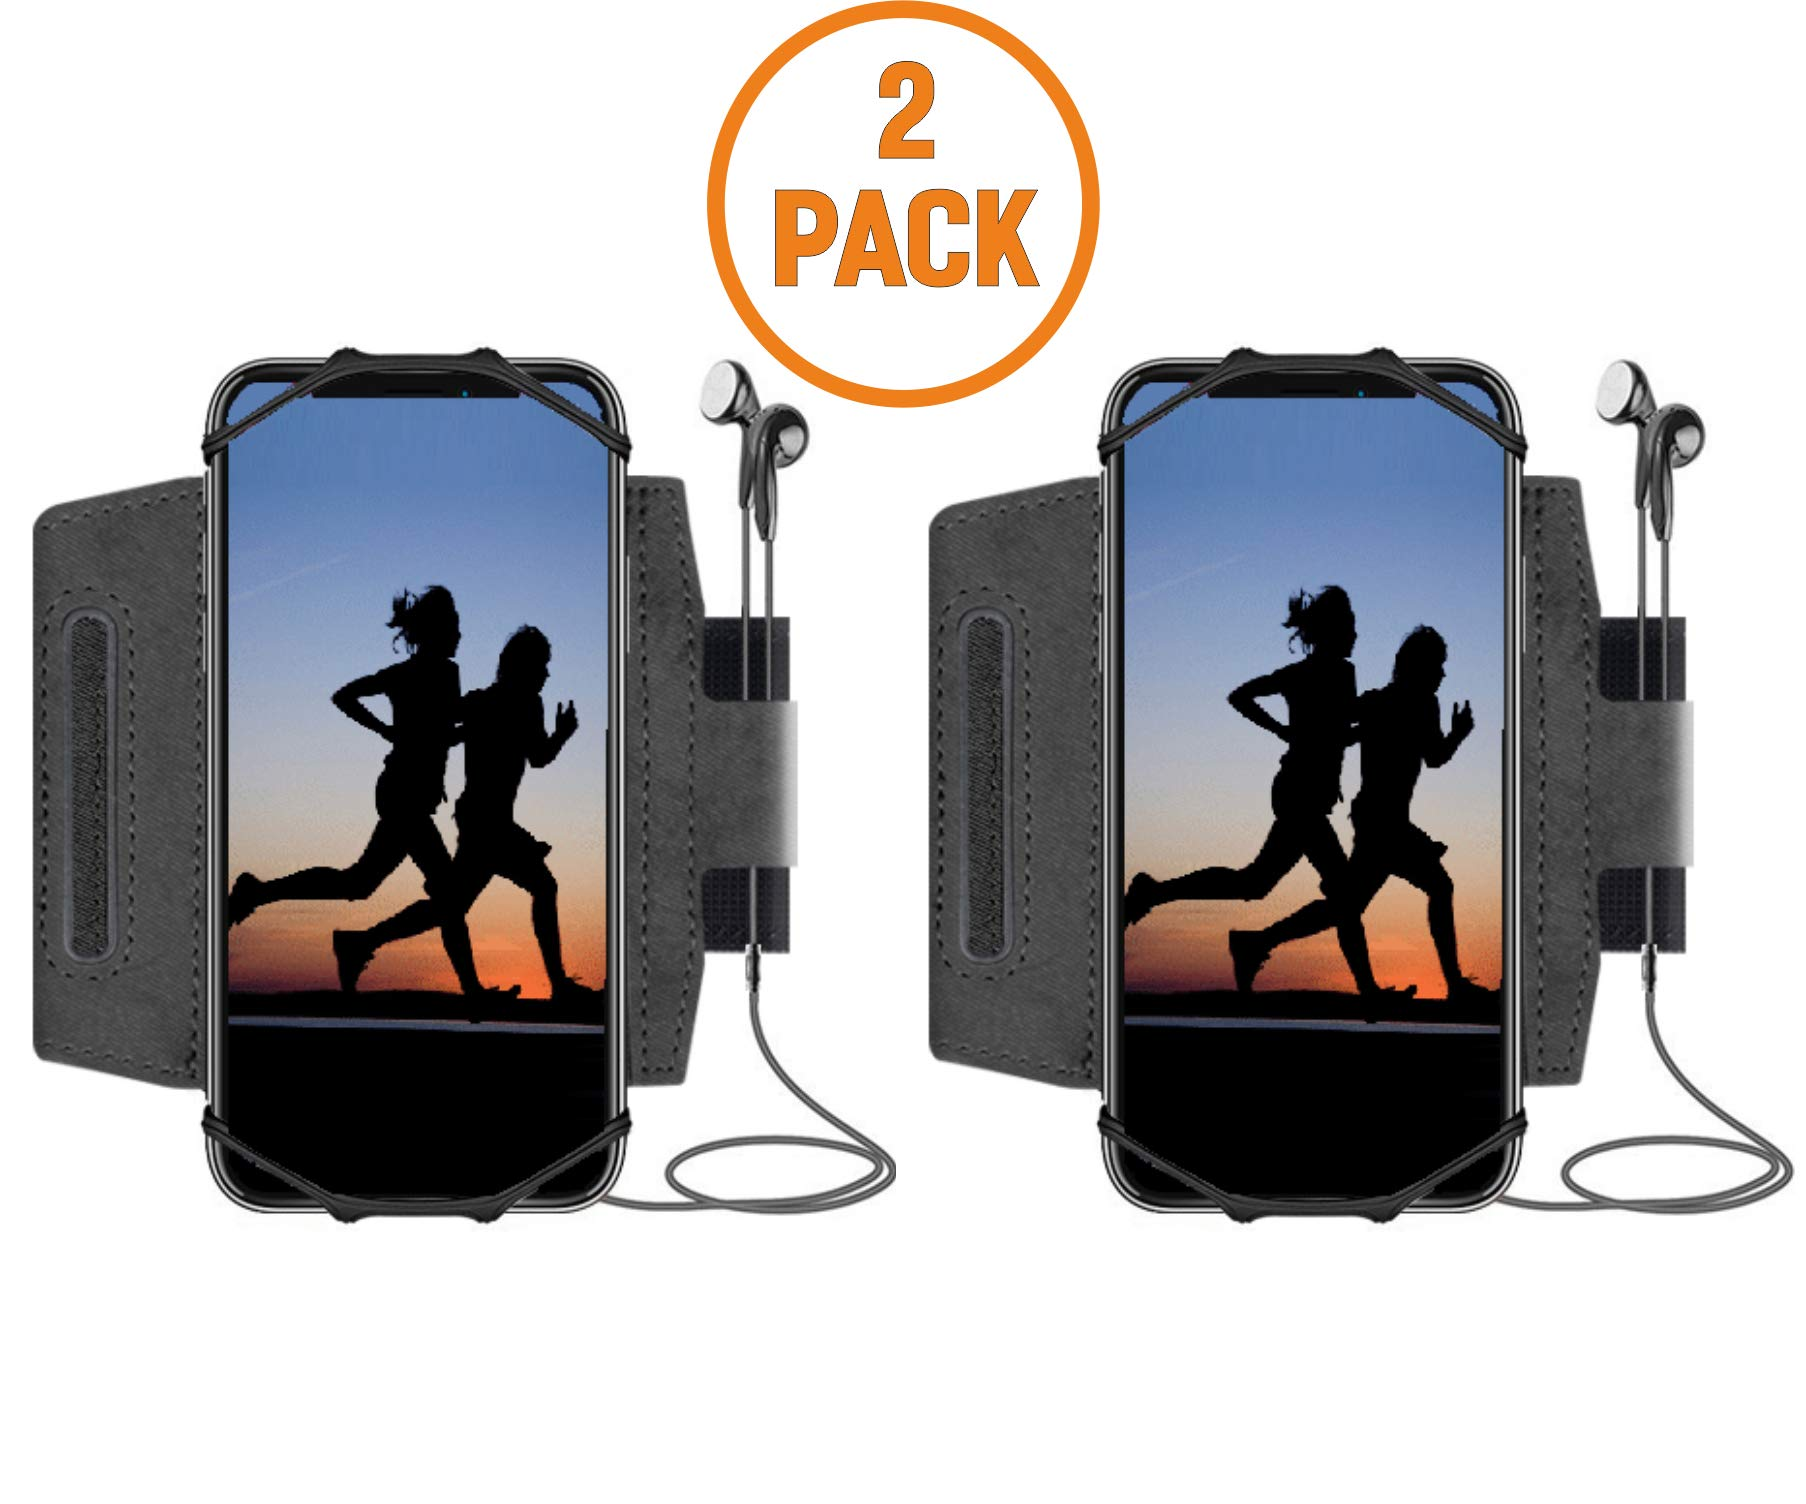 Sports Running Armband for All Phones: iPhone X XR XS Max 8 Plus 7 Plus 6, Samsung Galaxy A8 S9 S8 S6 Edge, LG, HTC, Pixel; 180° Rotatable Cell Phone Holder for Men & Women + Extender Strap Free